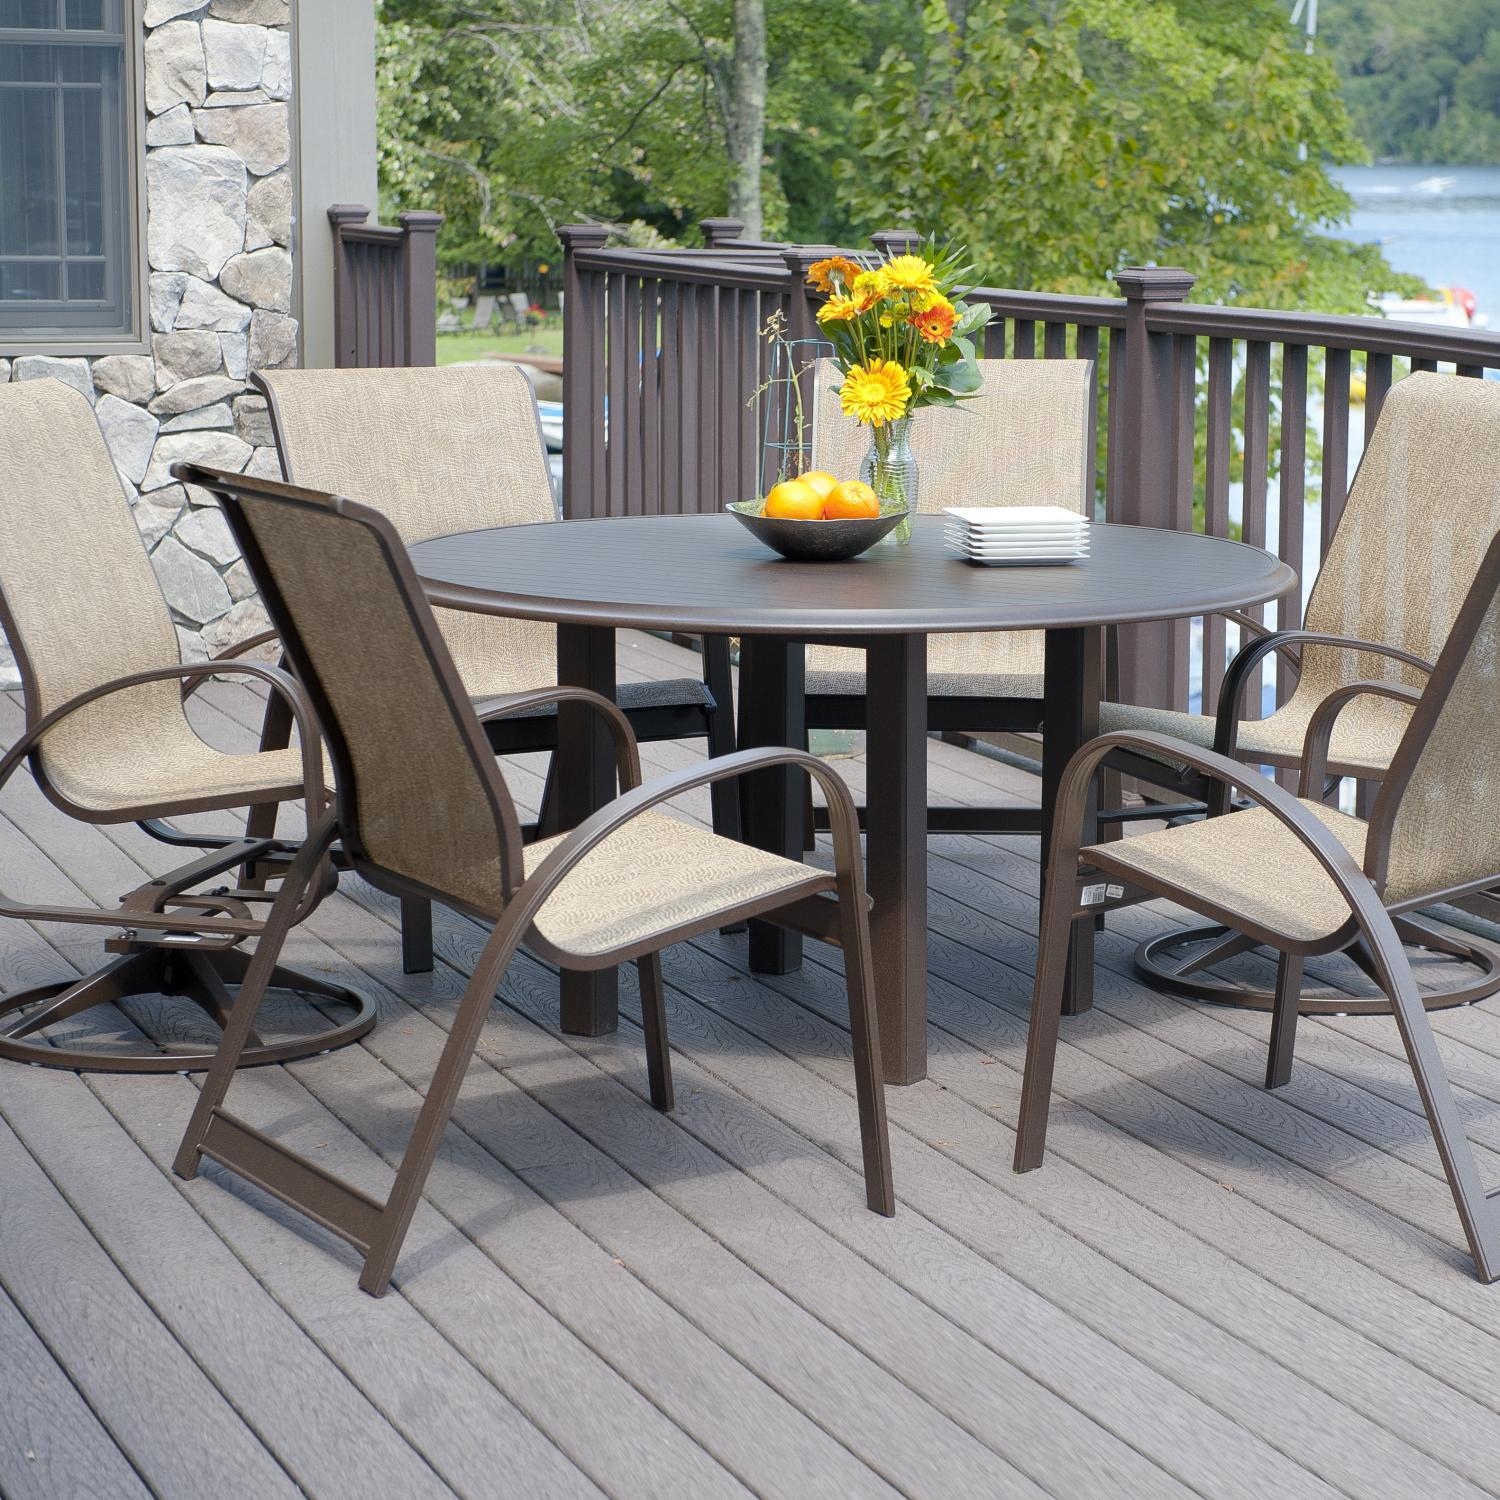 Cheap Patio Dining Sets Creativity